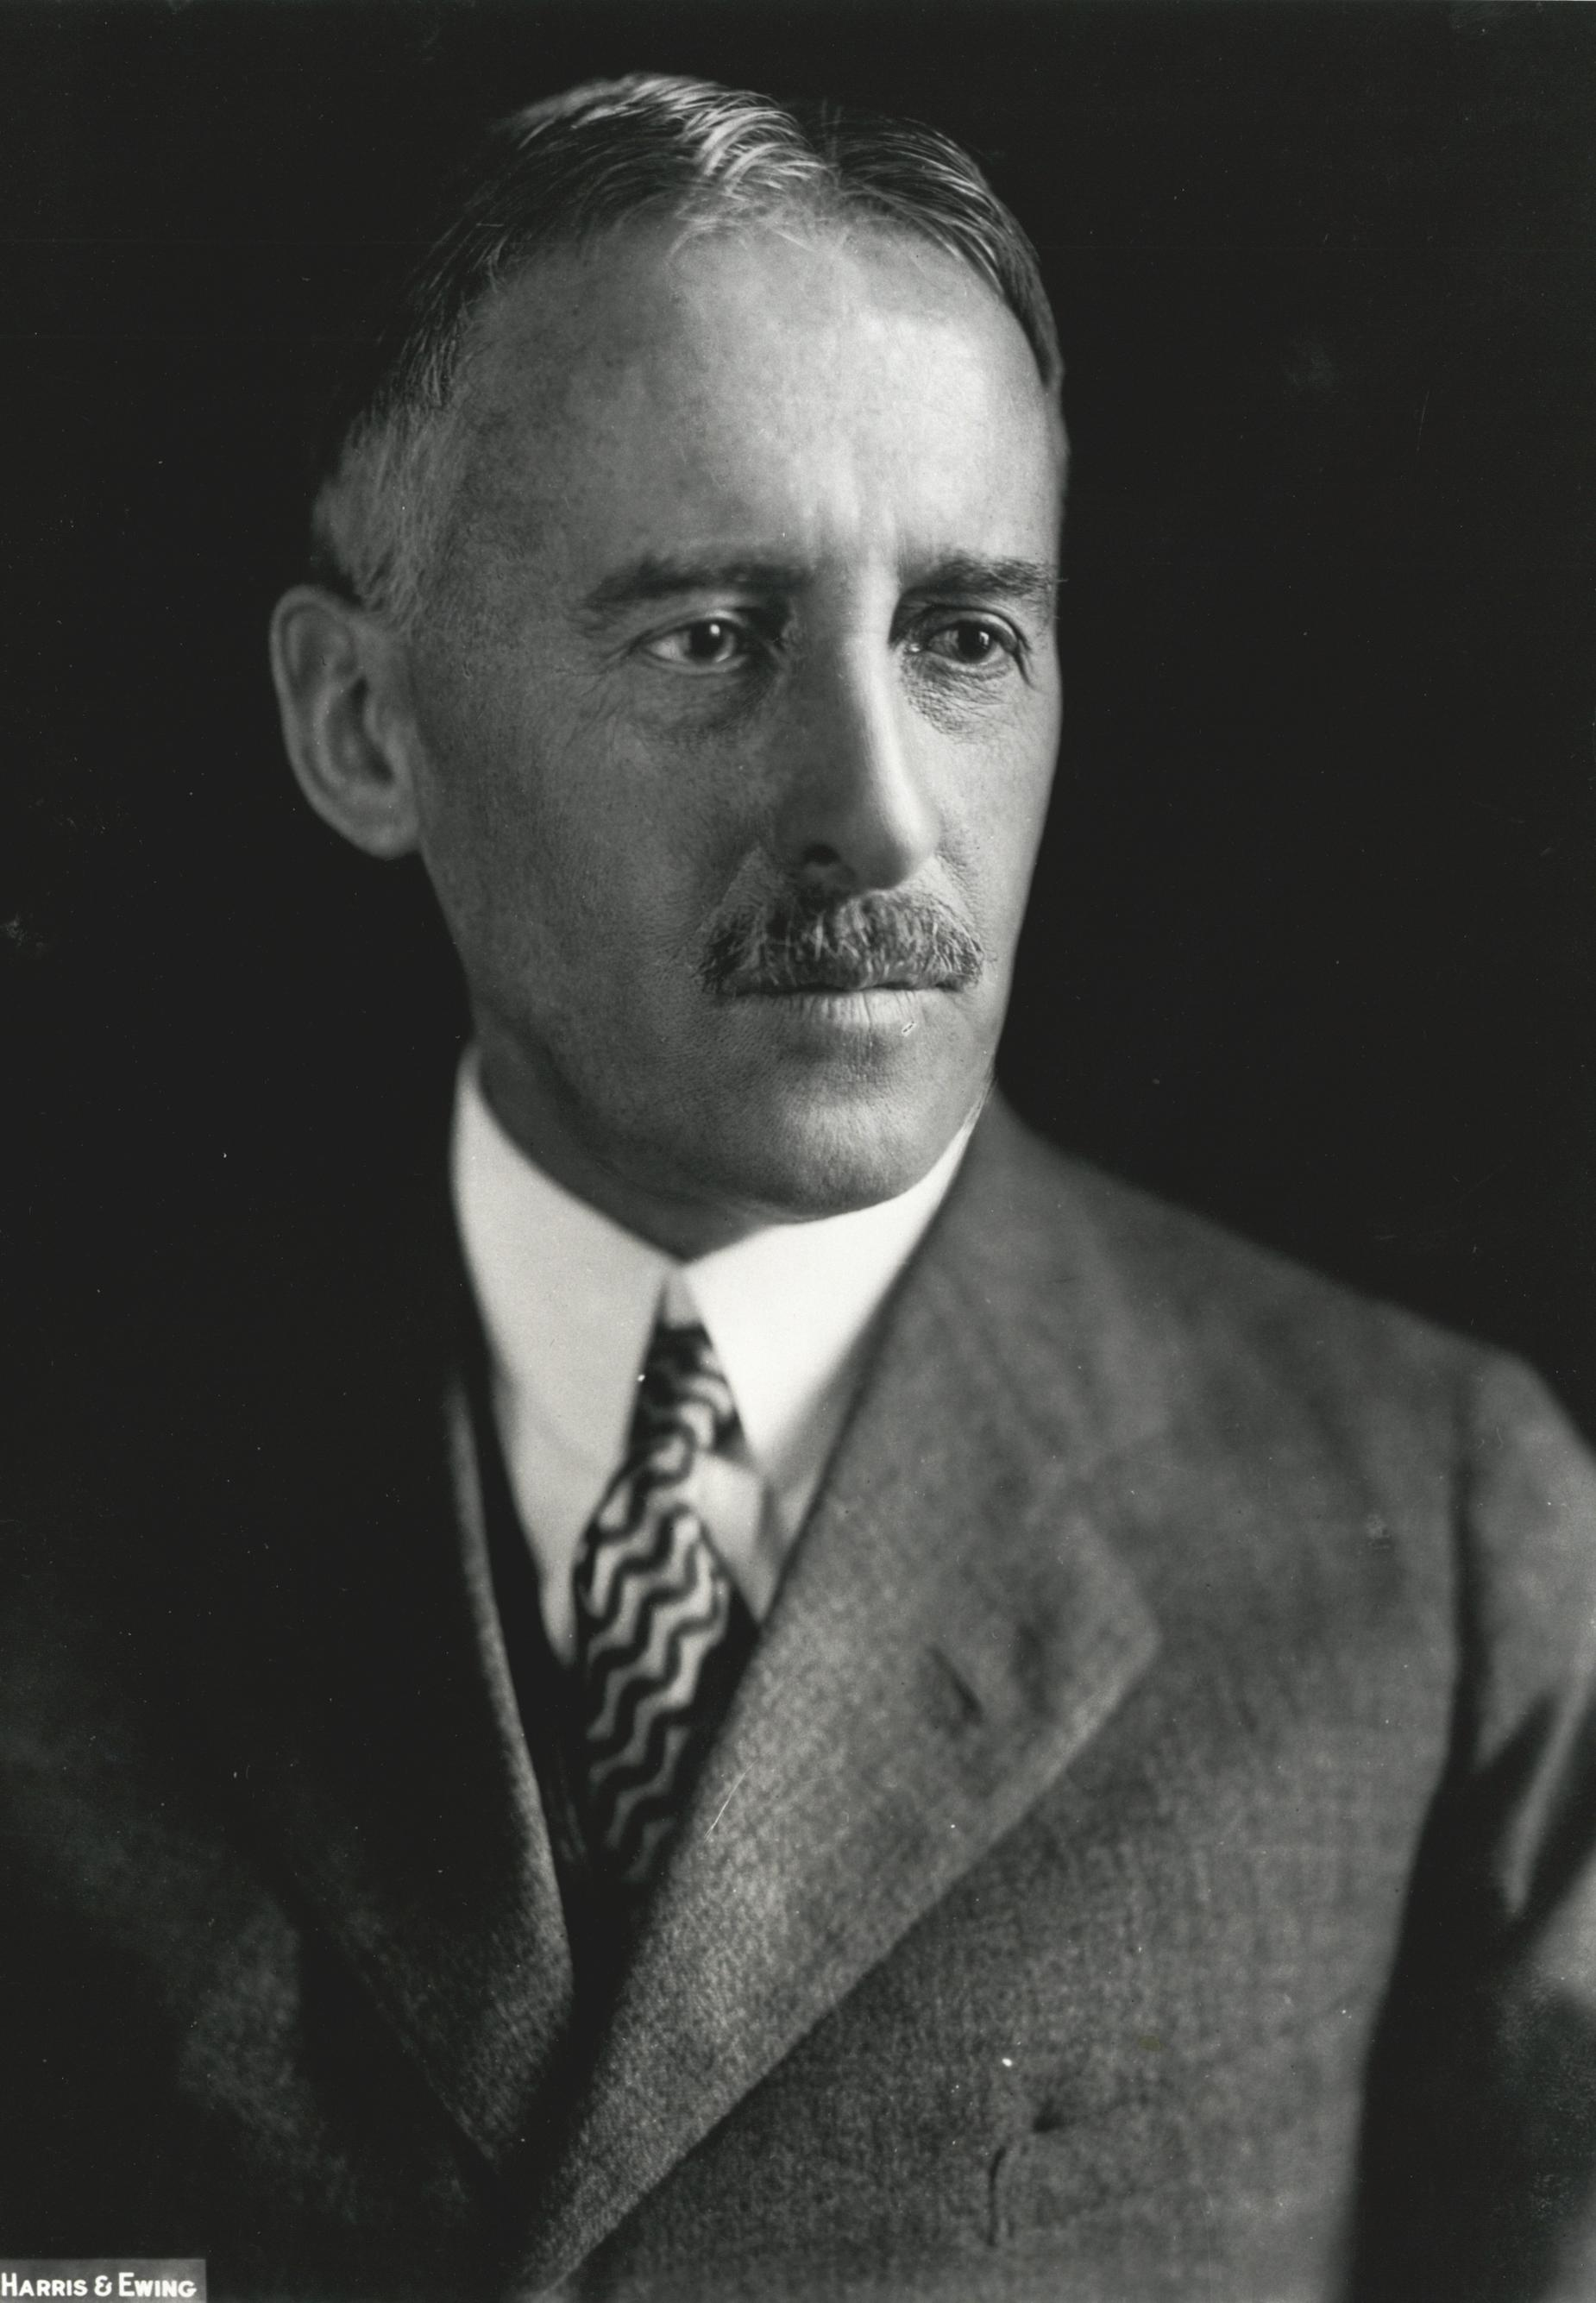 https://upload.wikimedia.org/wikipedia/commons/6/61/Henry_Stimson,_Harris_%26_Ewing_bw_photo_portrait,_1929.jpg